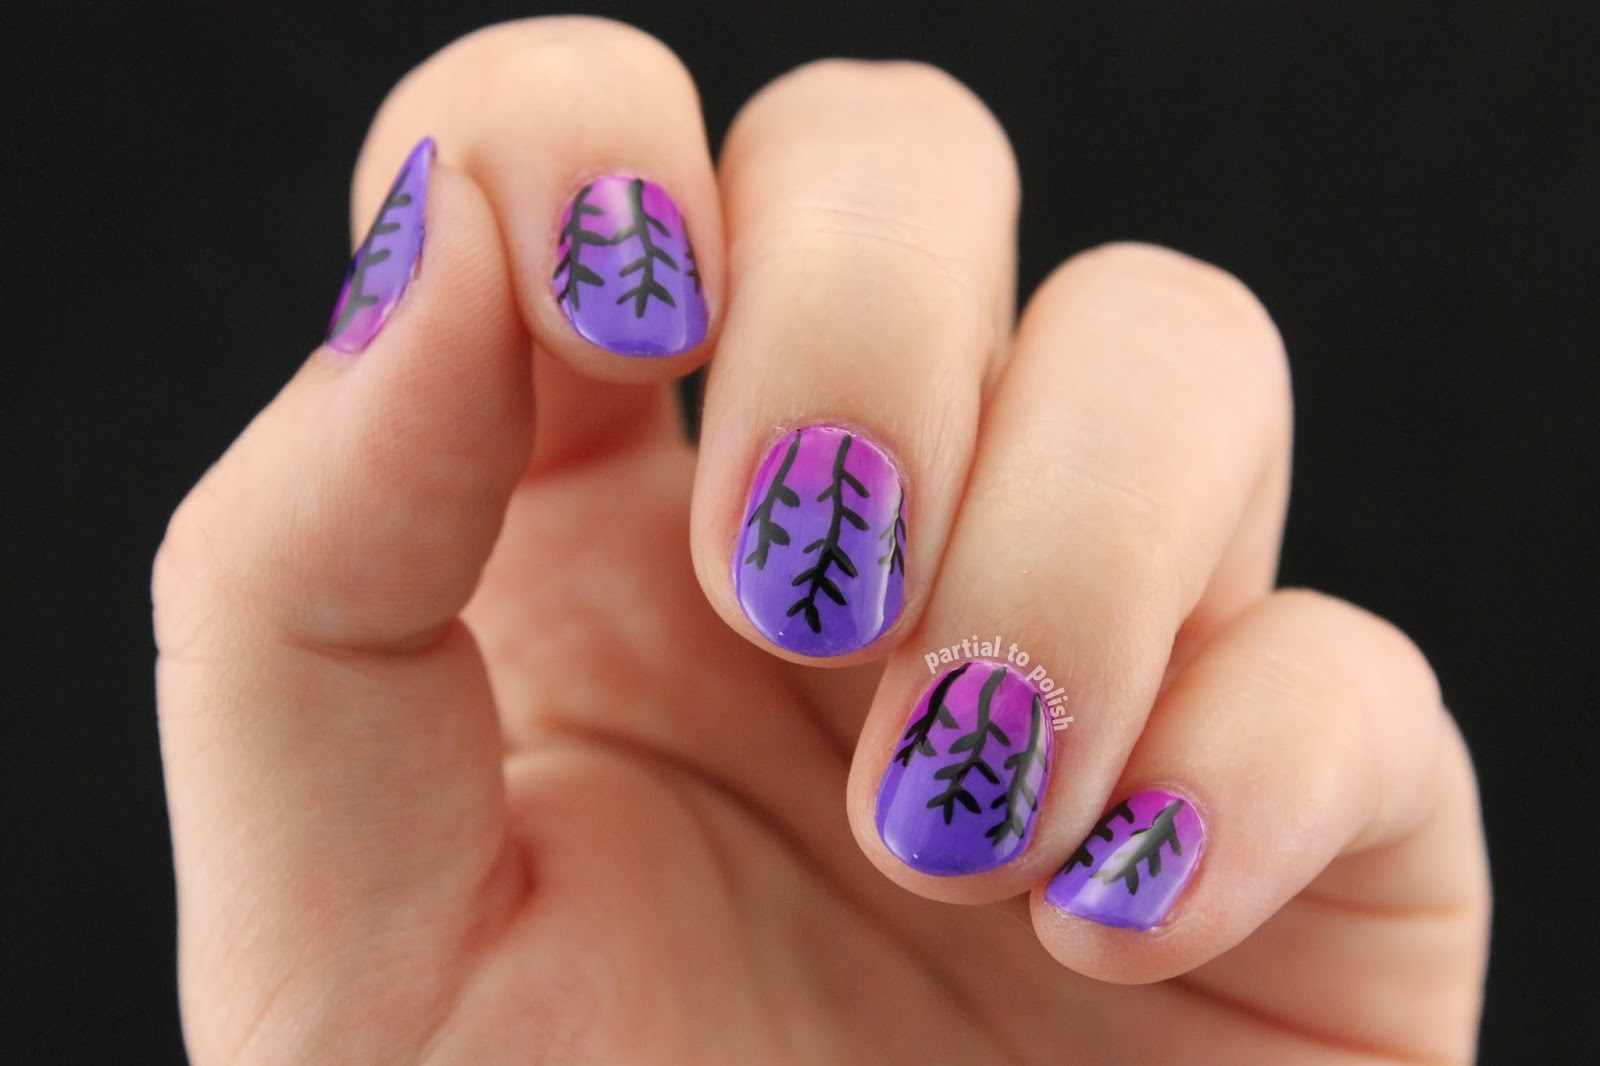 Partial To Polish Wheat At Sunset Nail Art Inspired By Chalkboard